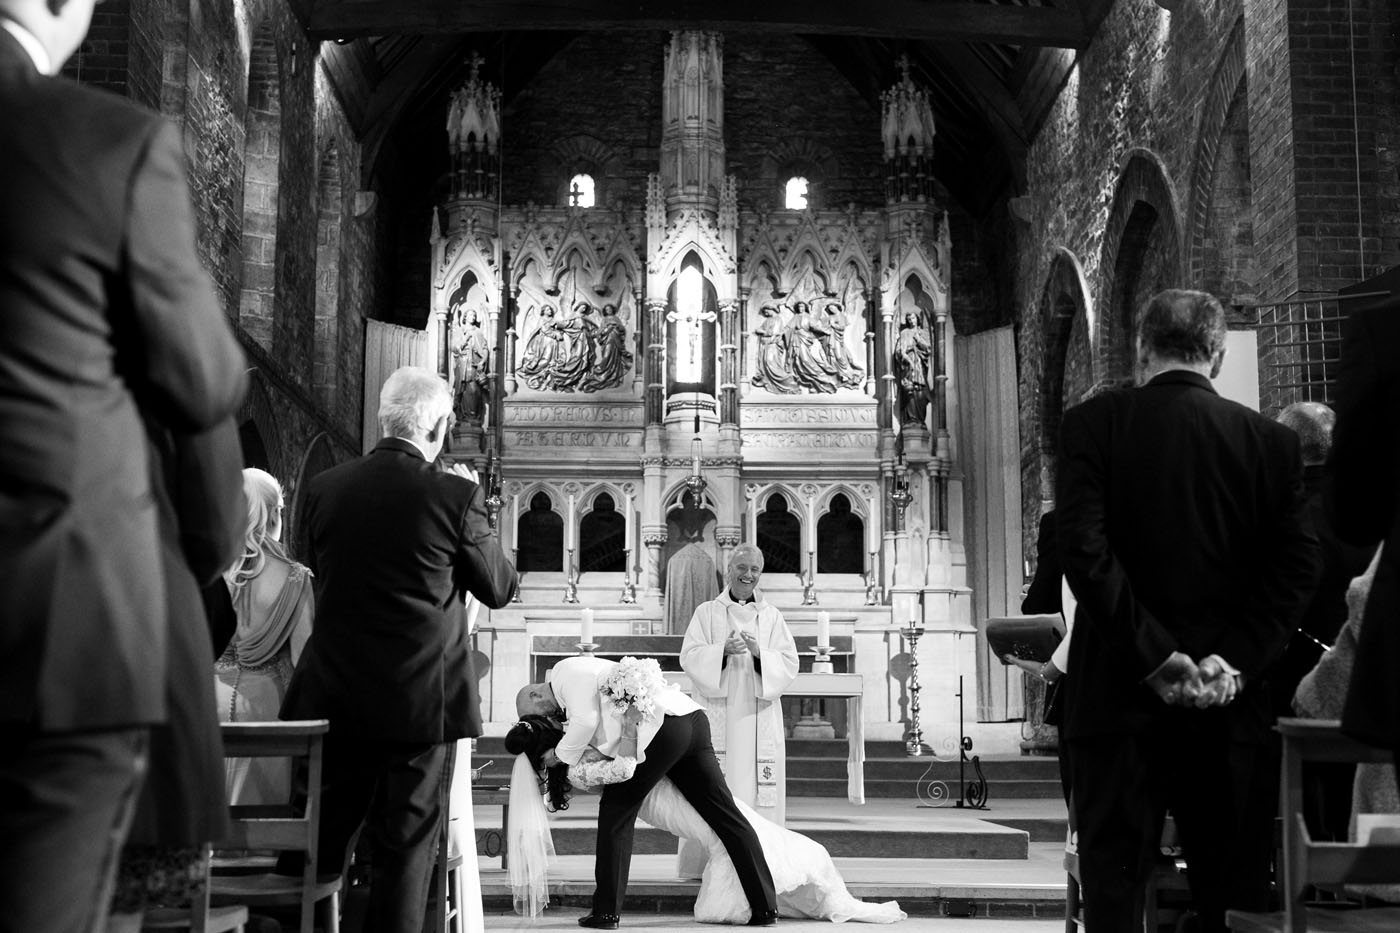 At the alter, a groom lowers his bride for a kiss